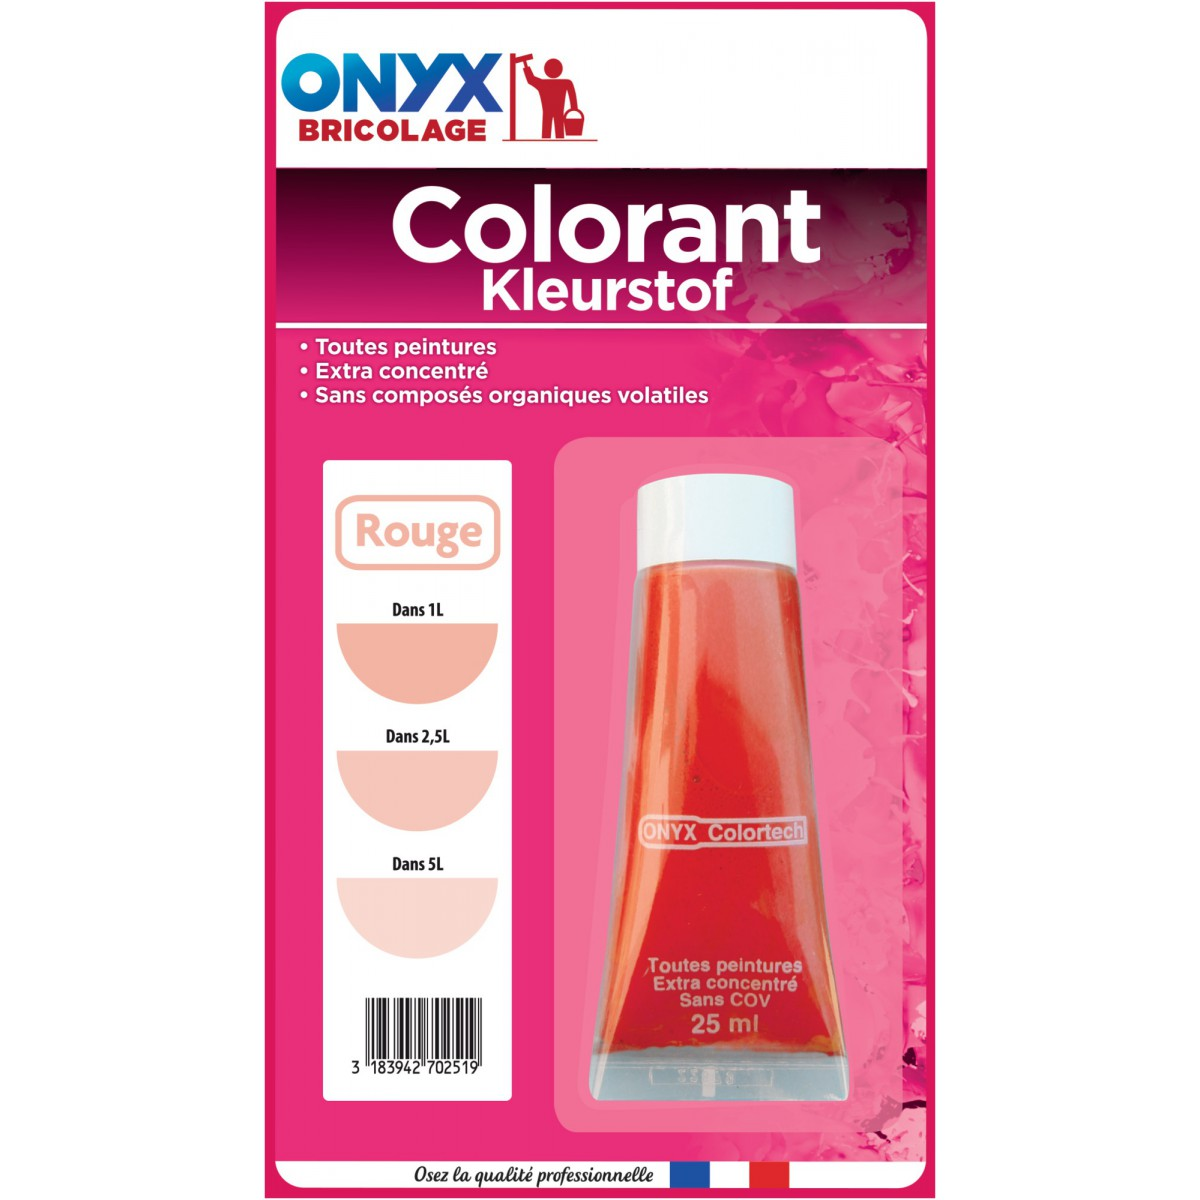 Colorant universel 25 ml Onyx - Rouge